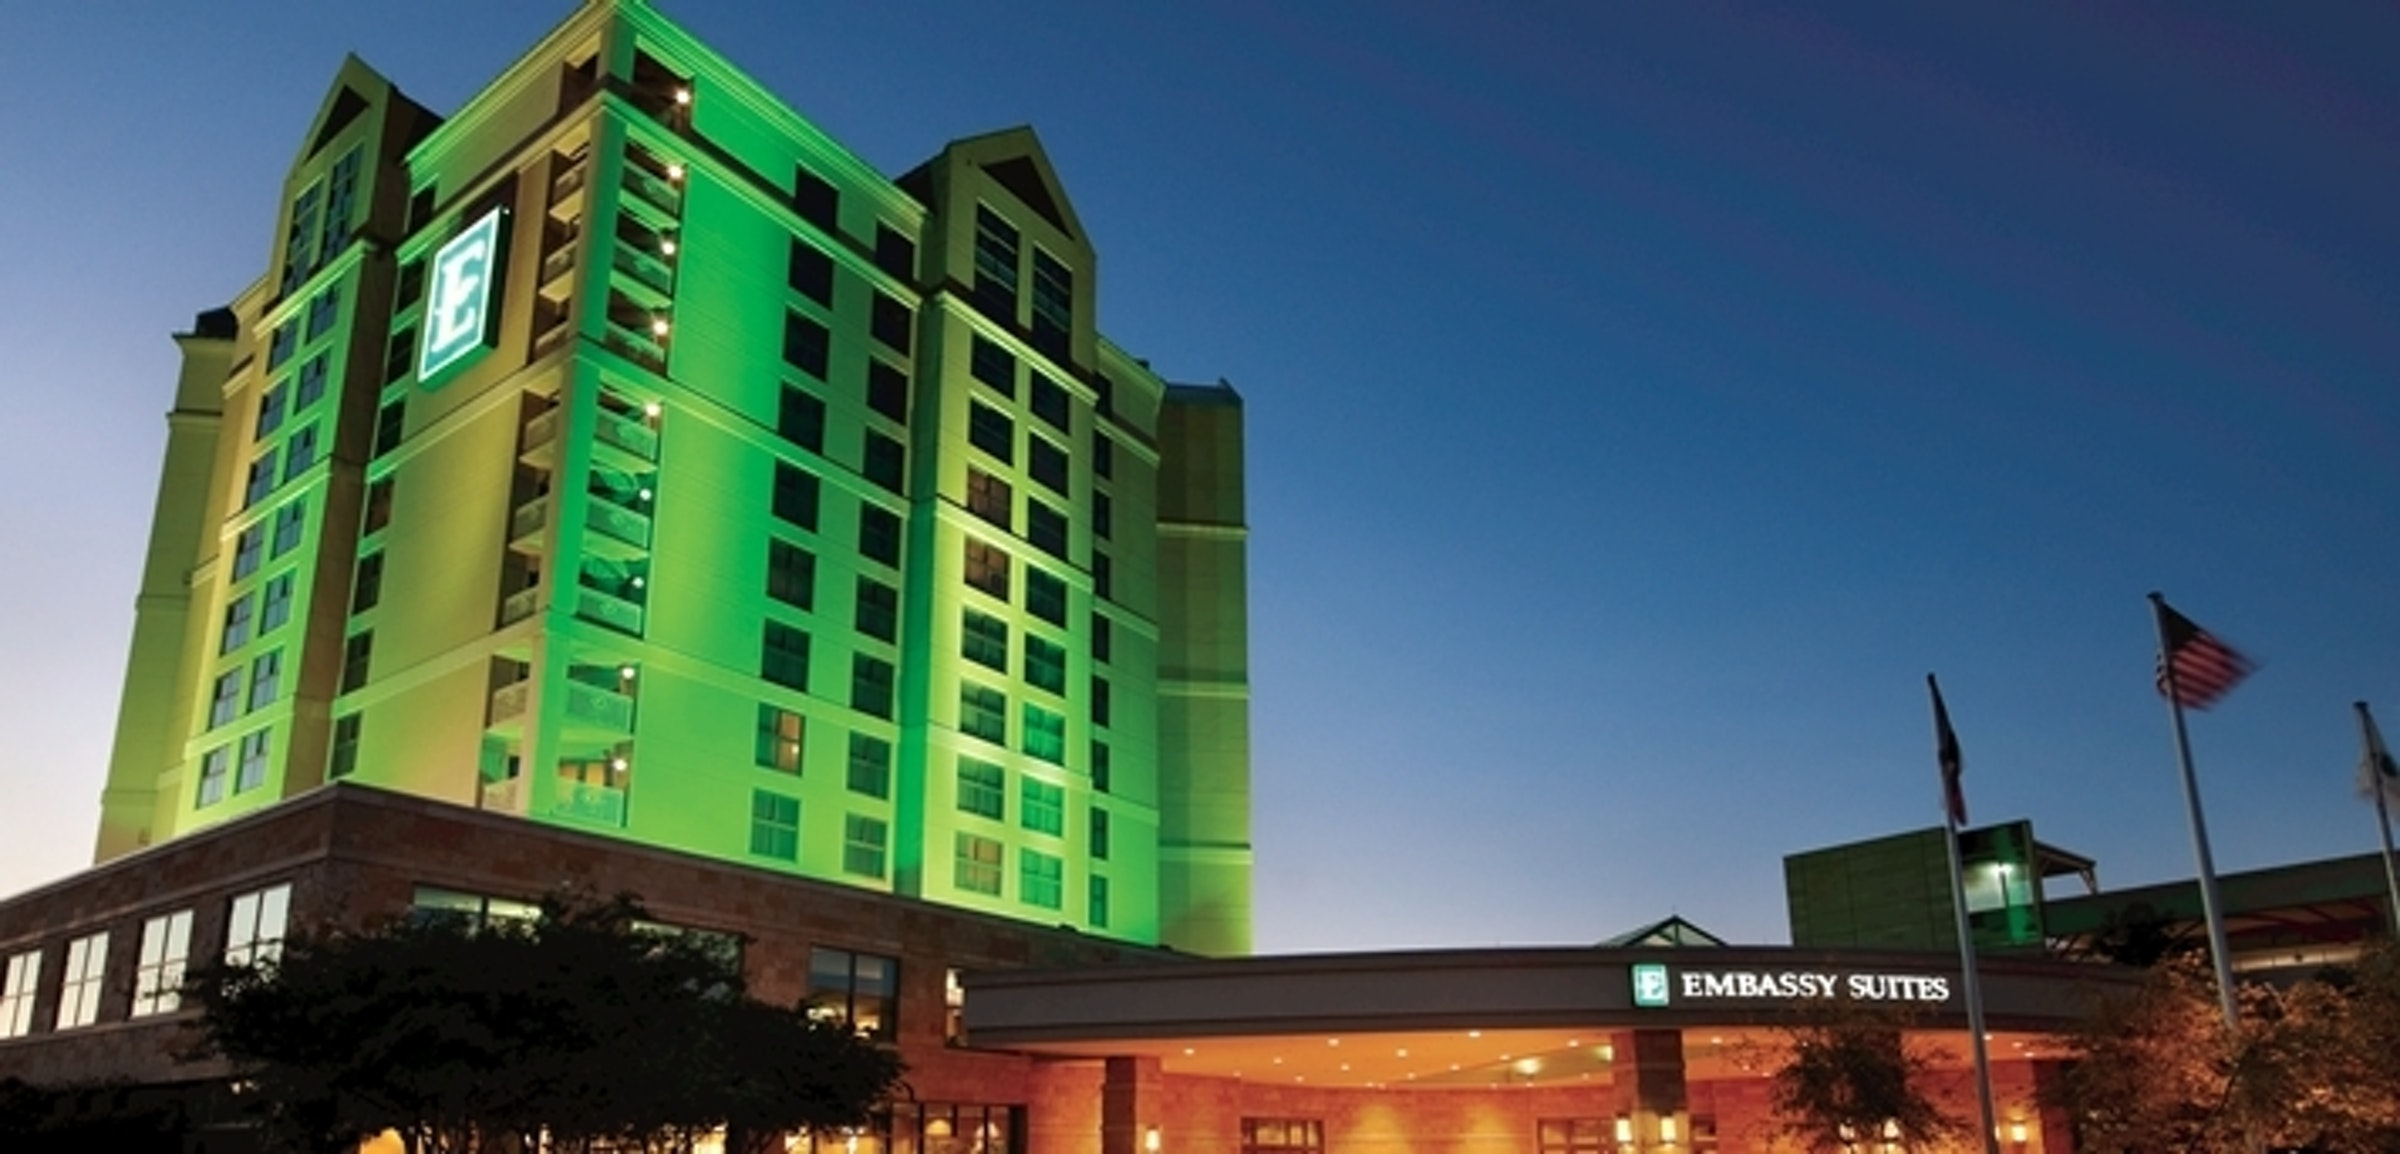 Embassy Suites by Hilton Dallas Frisco Hotel Convention Center & Spa in Beyond Dallas